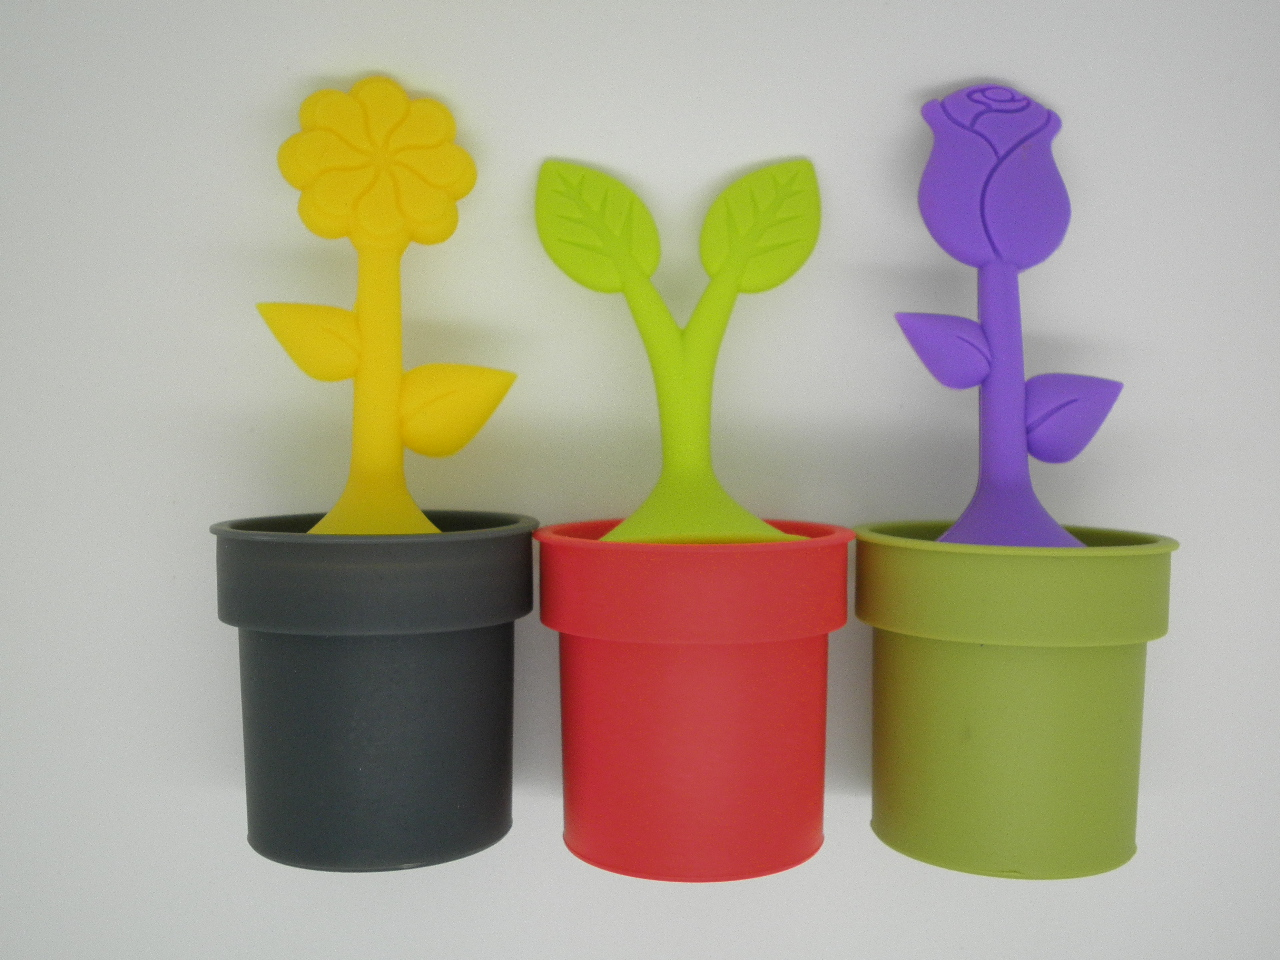 http://www.refinehksilicone.cn/data/images/product/20180417100849_292.JPG